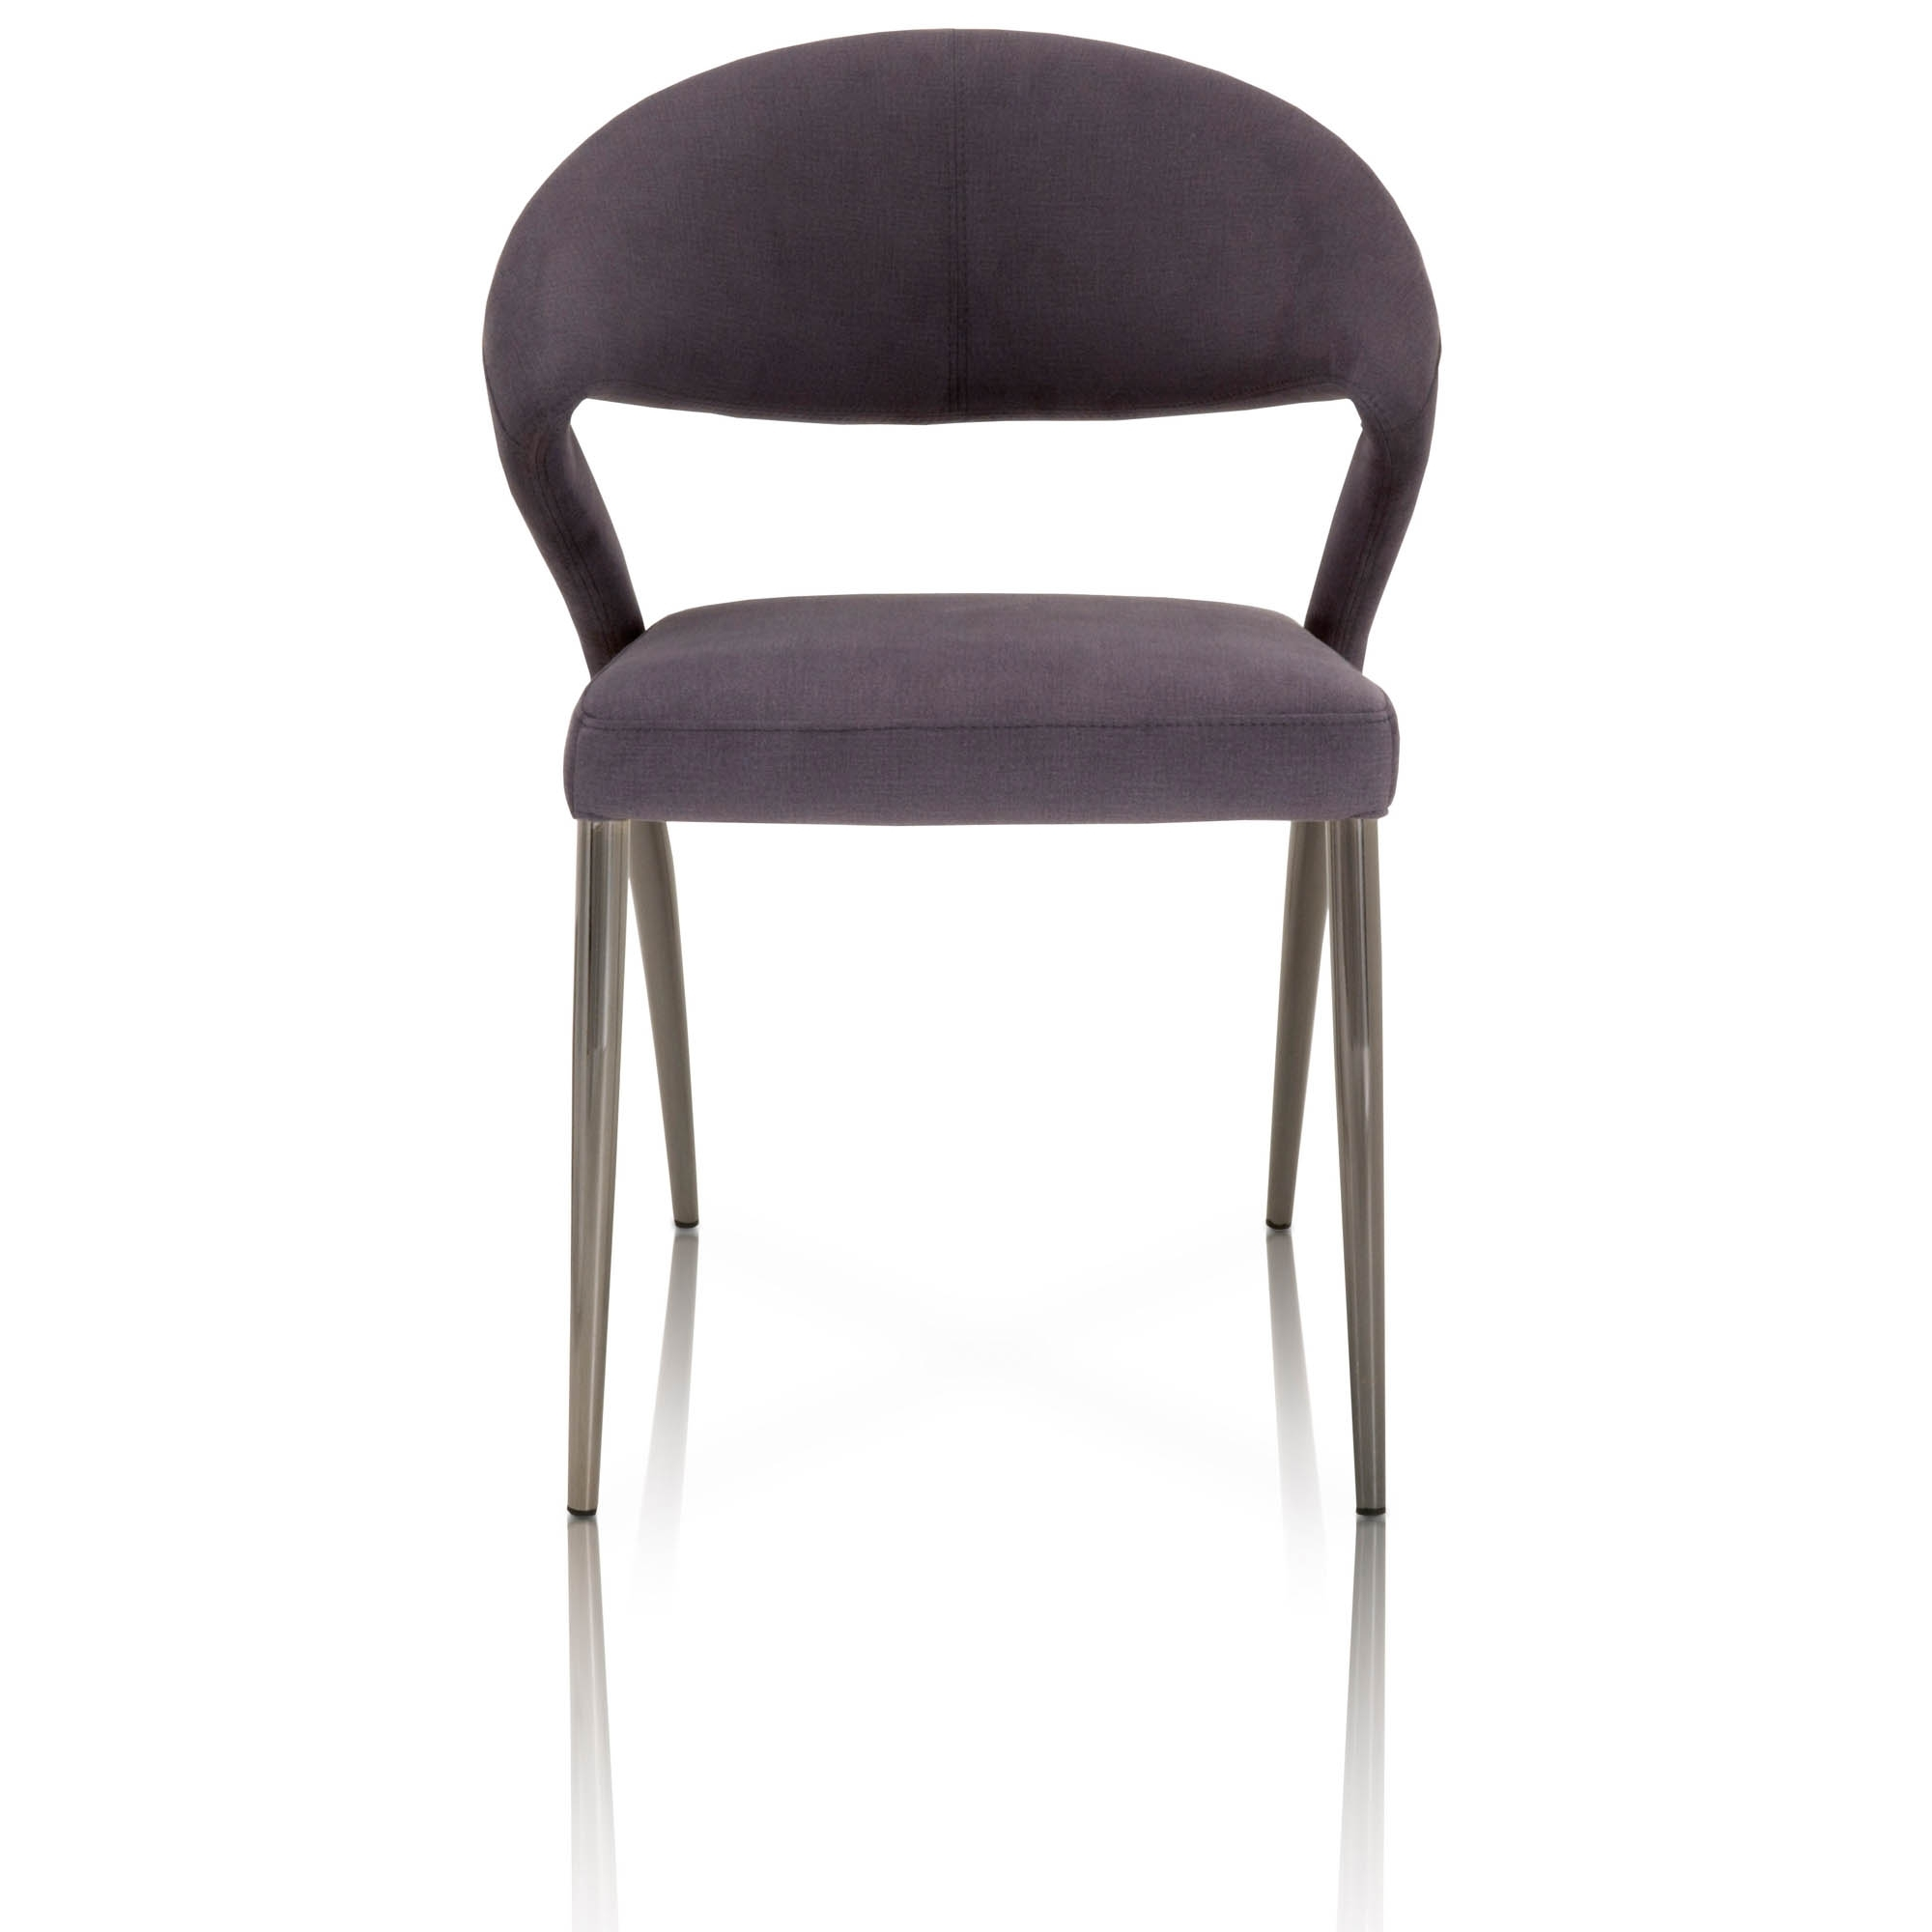 Alexa White Side Chairs Regarding Favorite Dining Chairs (Gallery 12 of 20)